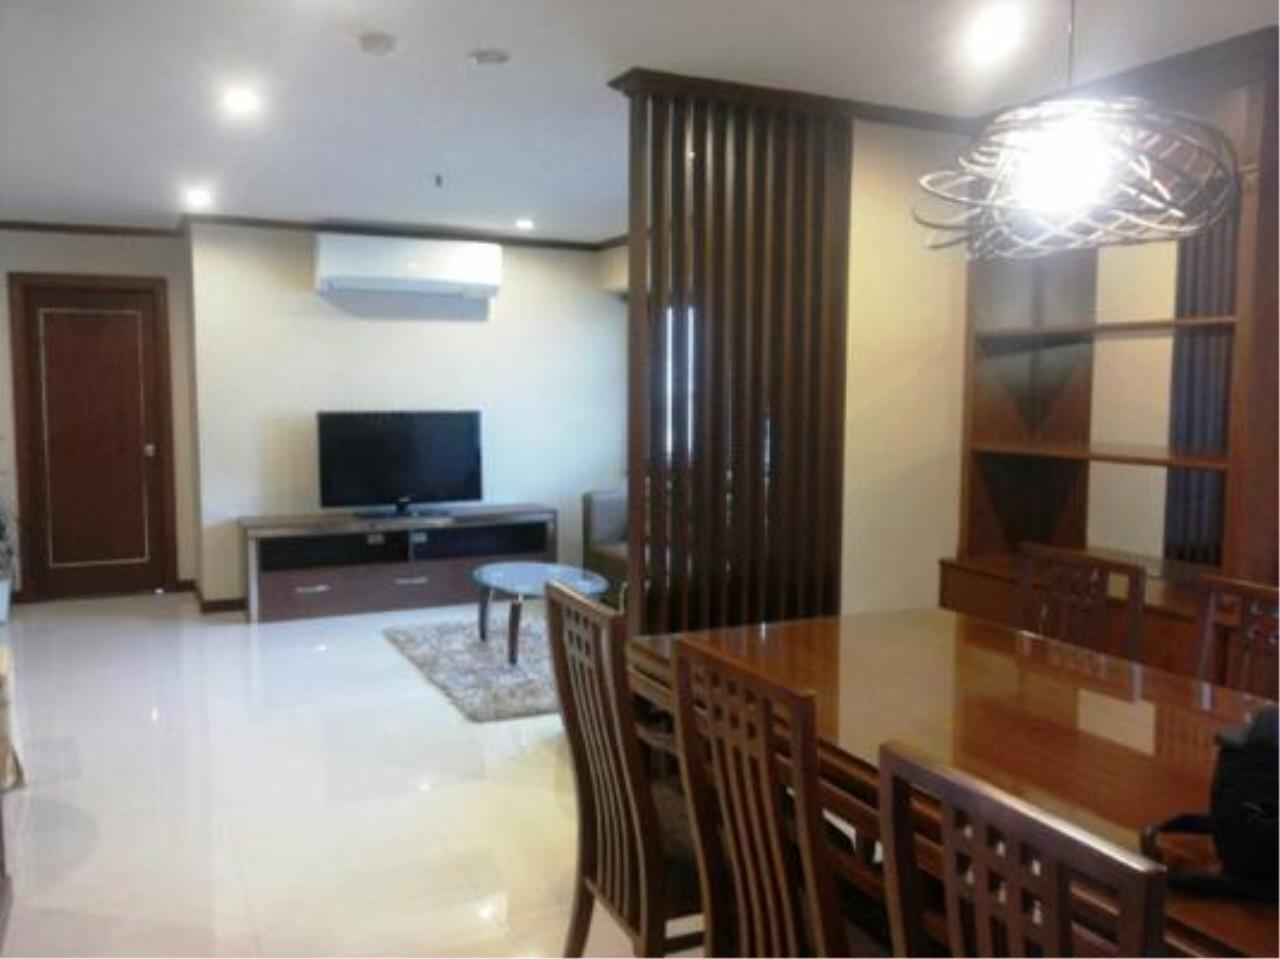 Right Move Thailand Agency's CA1593 Baan Suanpetch For Rent & Sale 80,000 THB 3 Bedrooms 129 Sqm 4